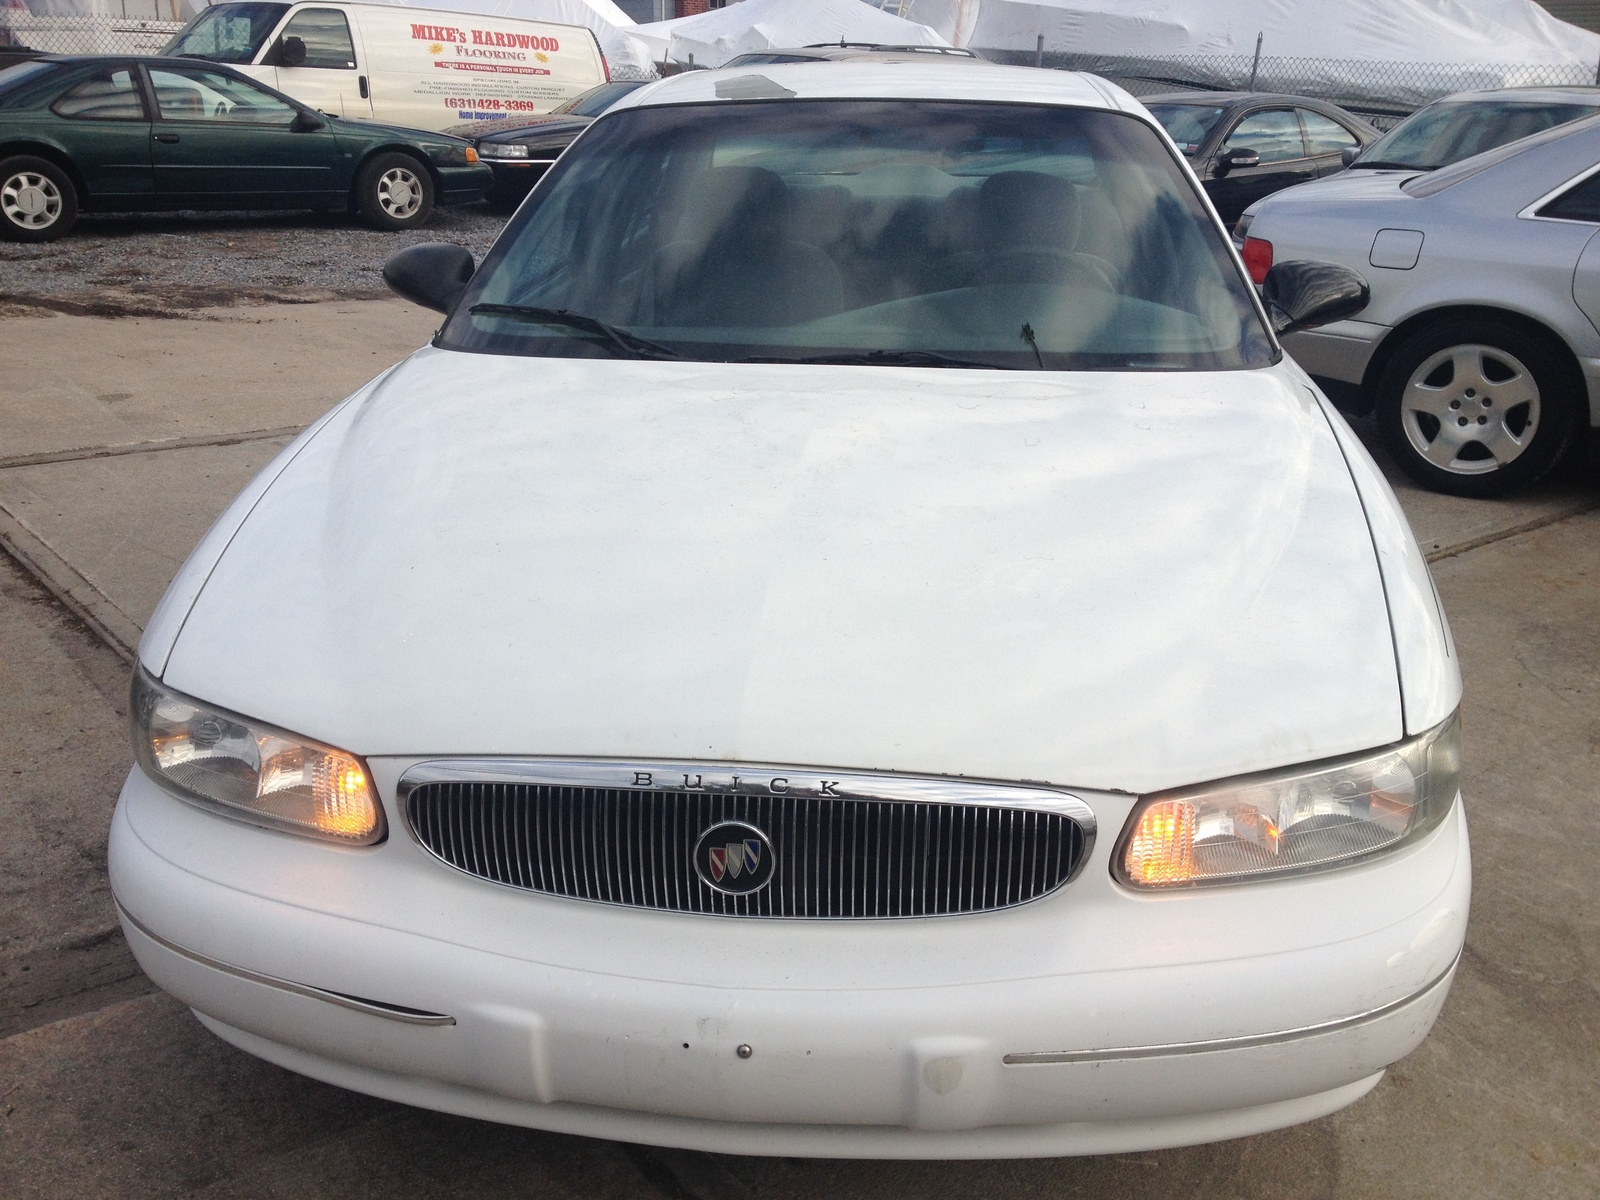 Picture of 1998 Buick Century Limited